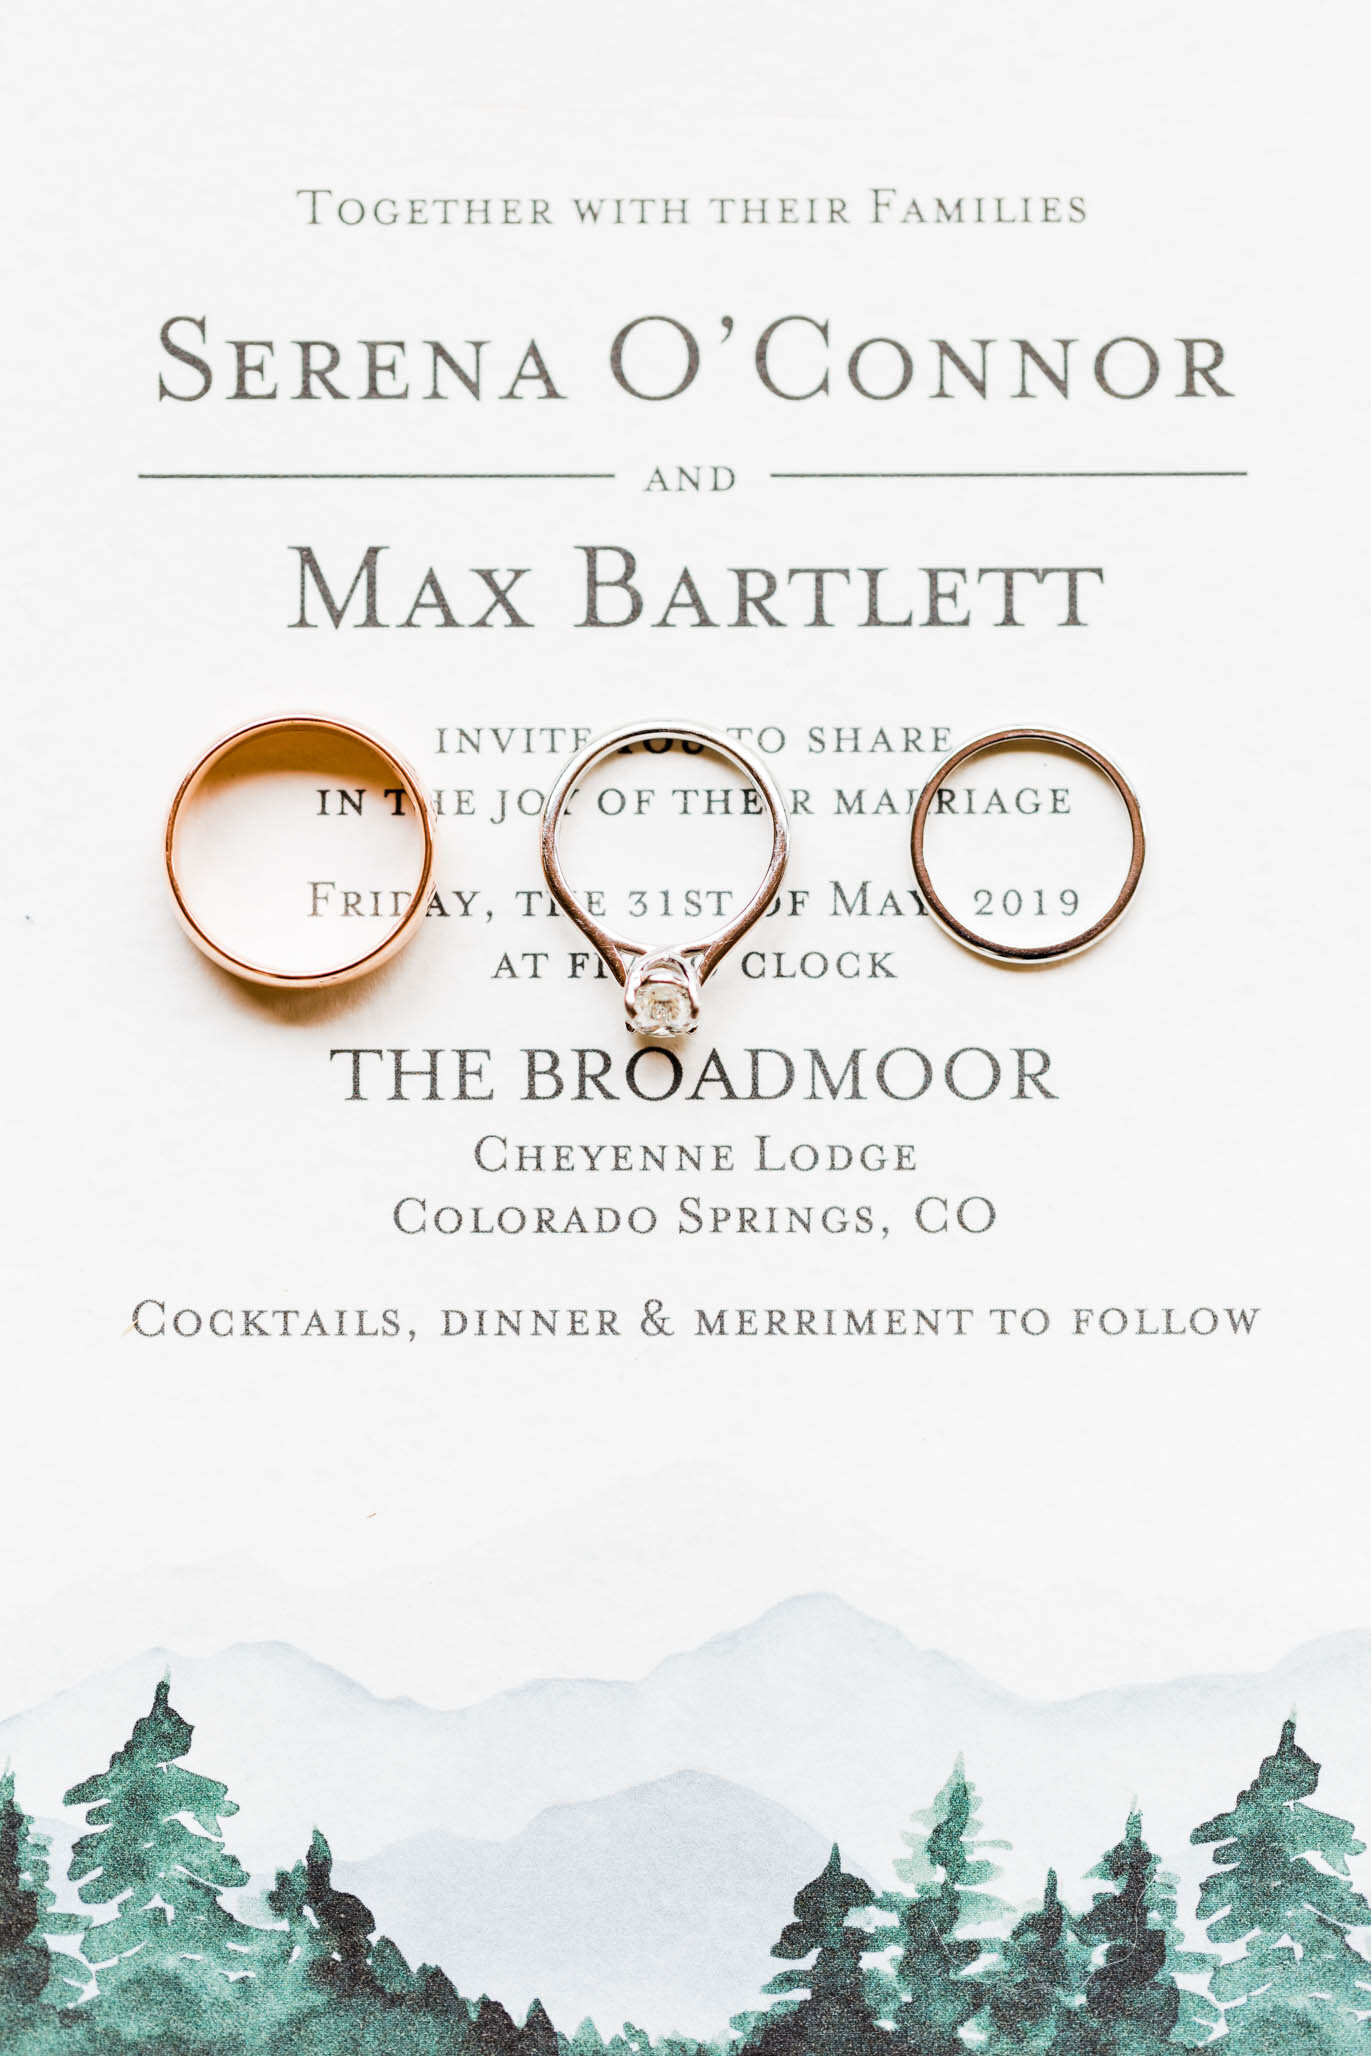 Their invitation suite was a perfect reflection of the mountainous backdrop at Cheyenne Lodge, The Broadmoor.